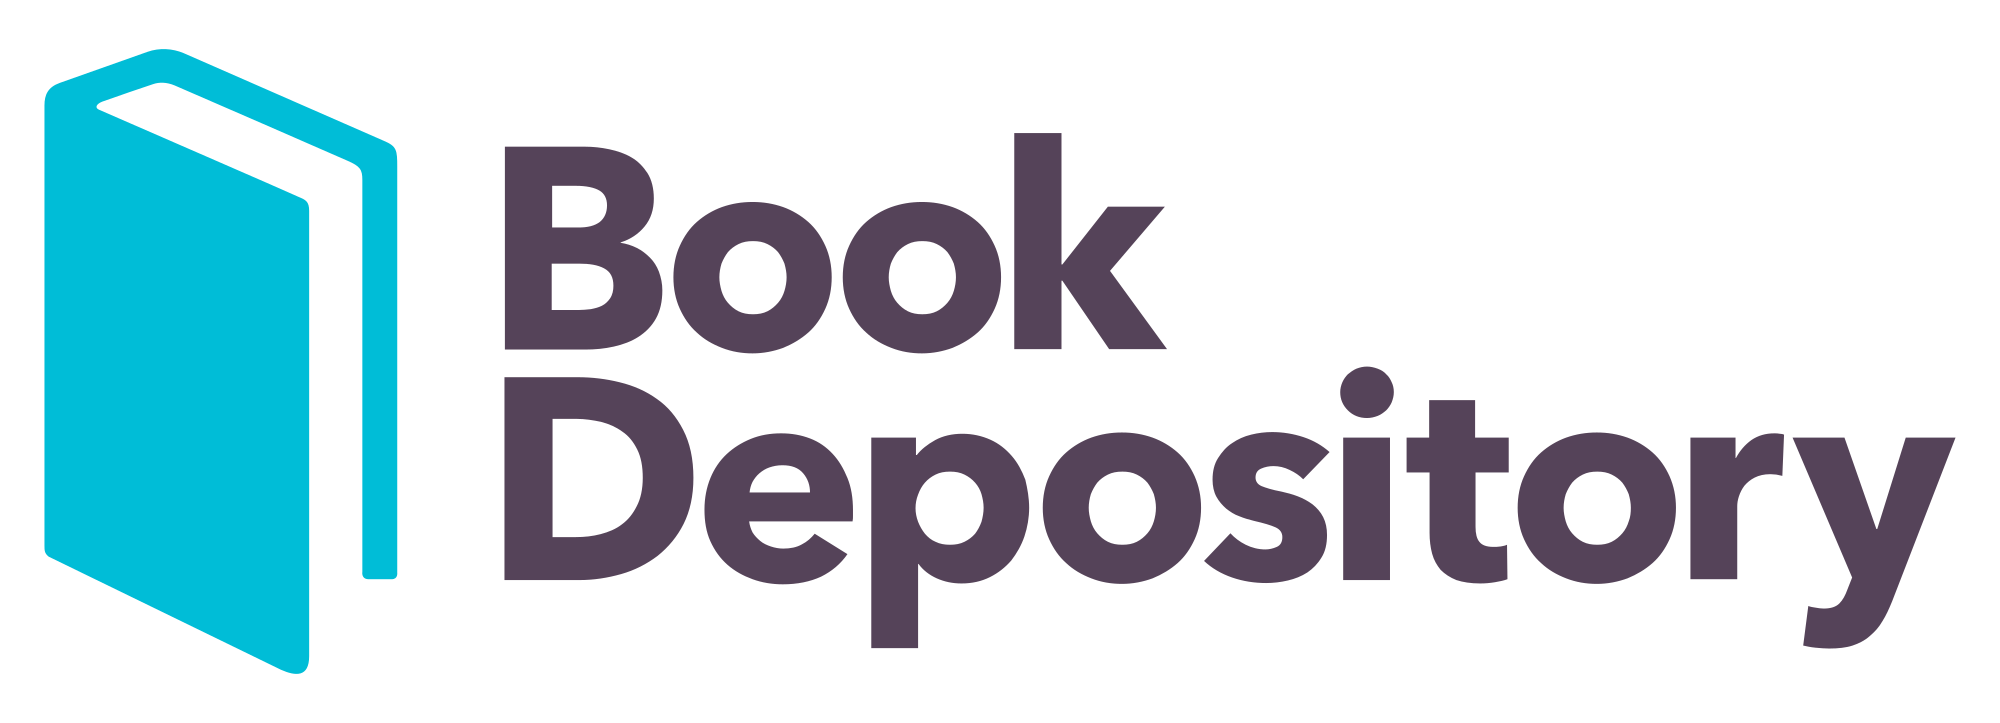 The Book Depository (US) Cashback